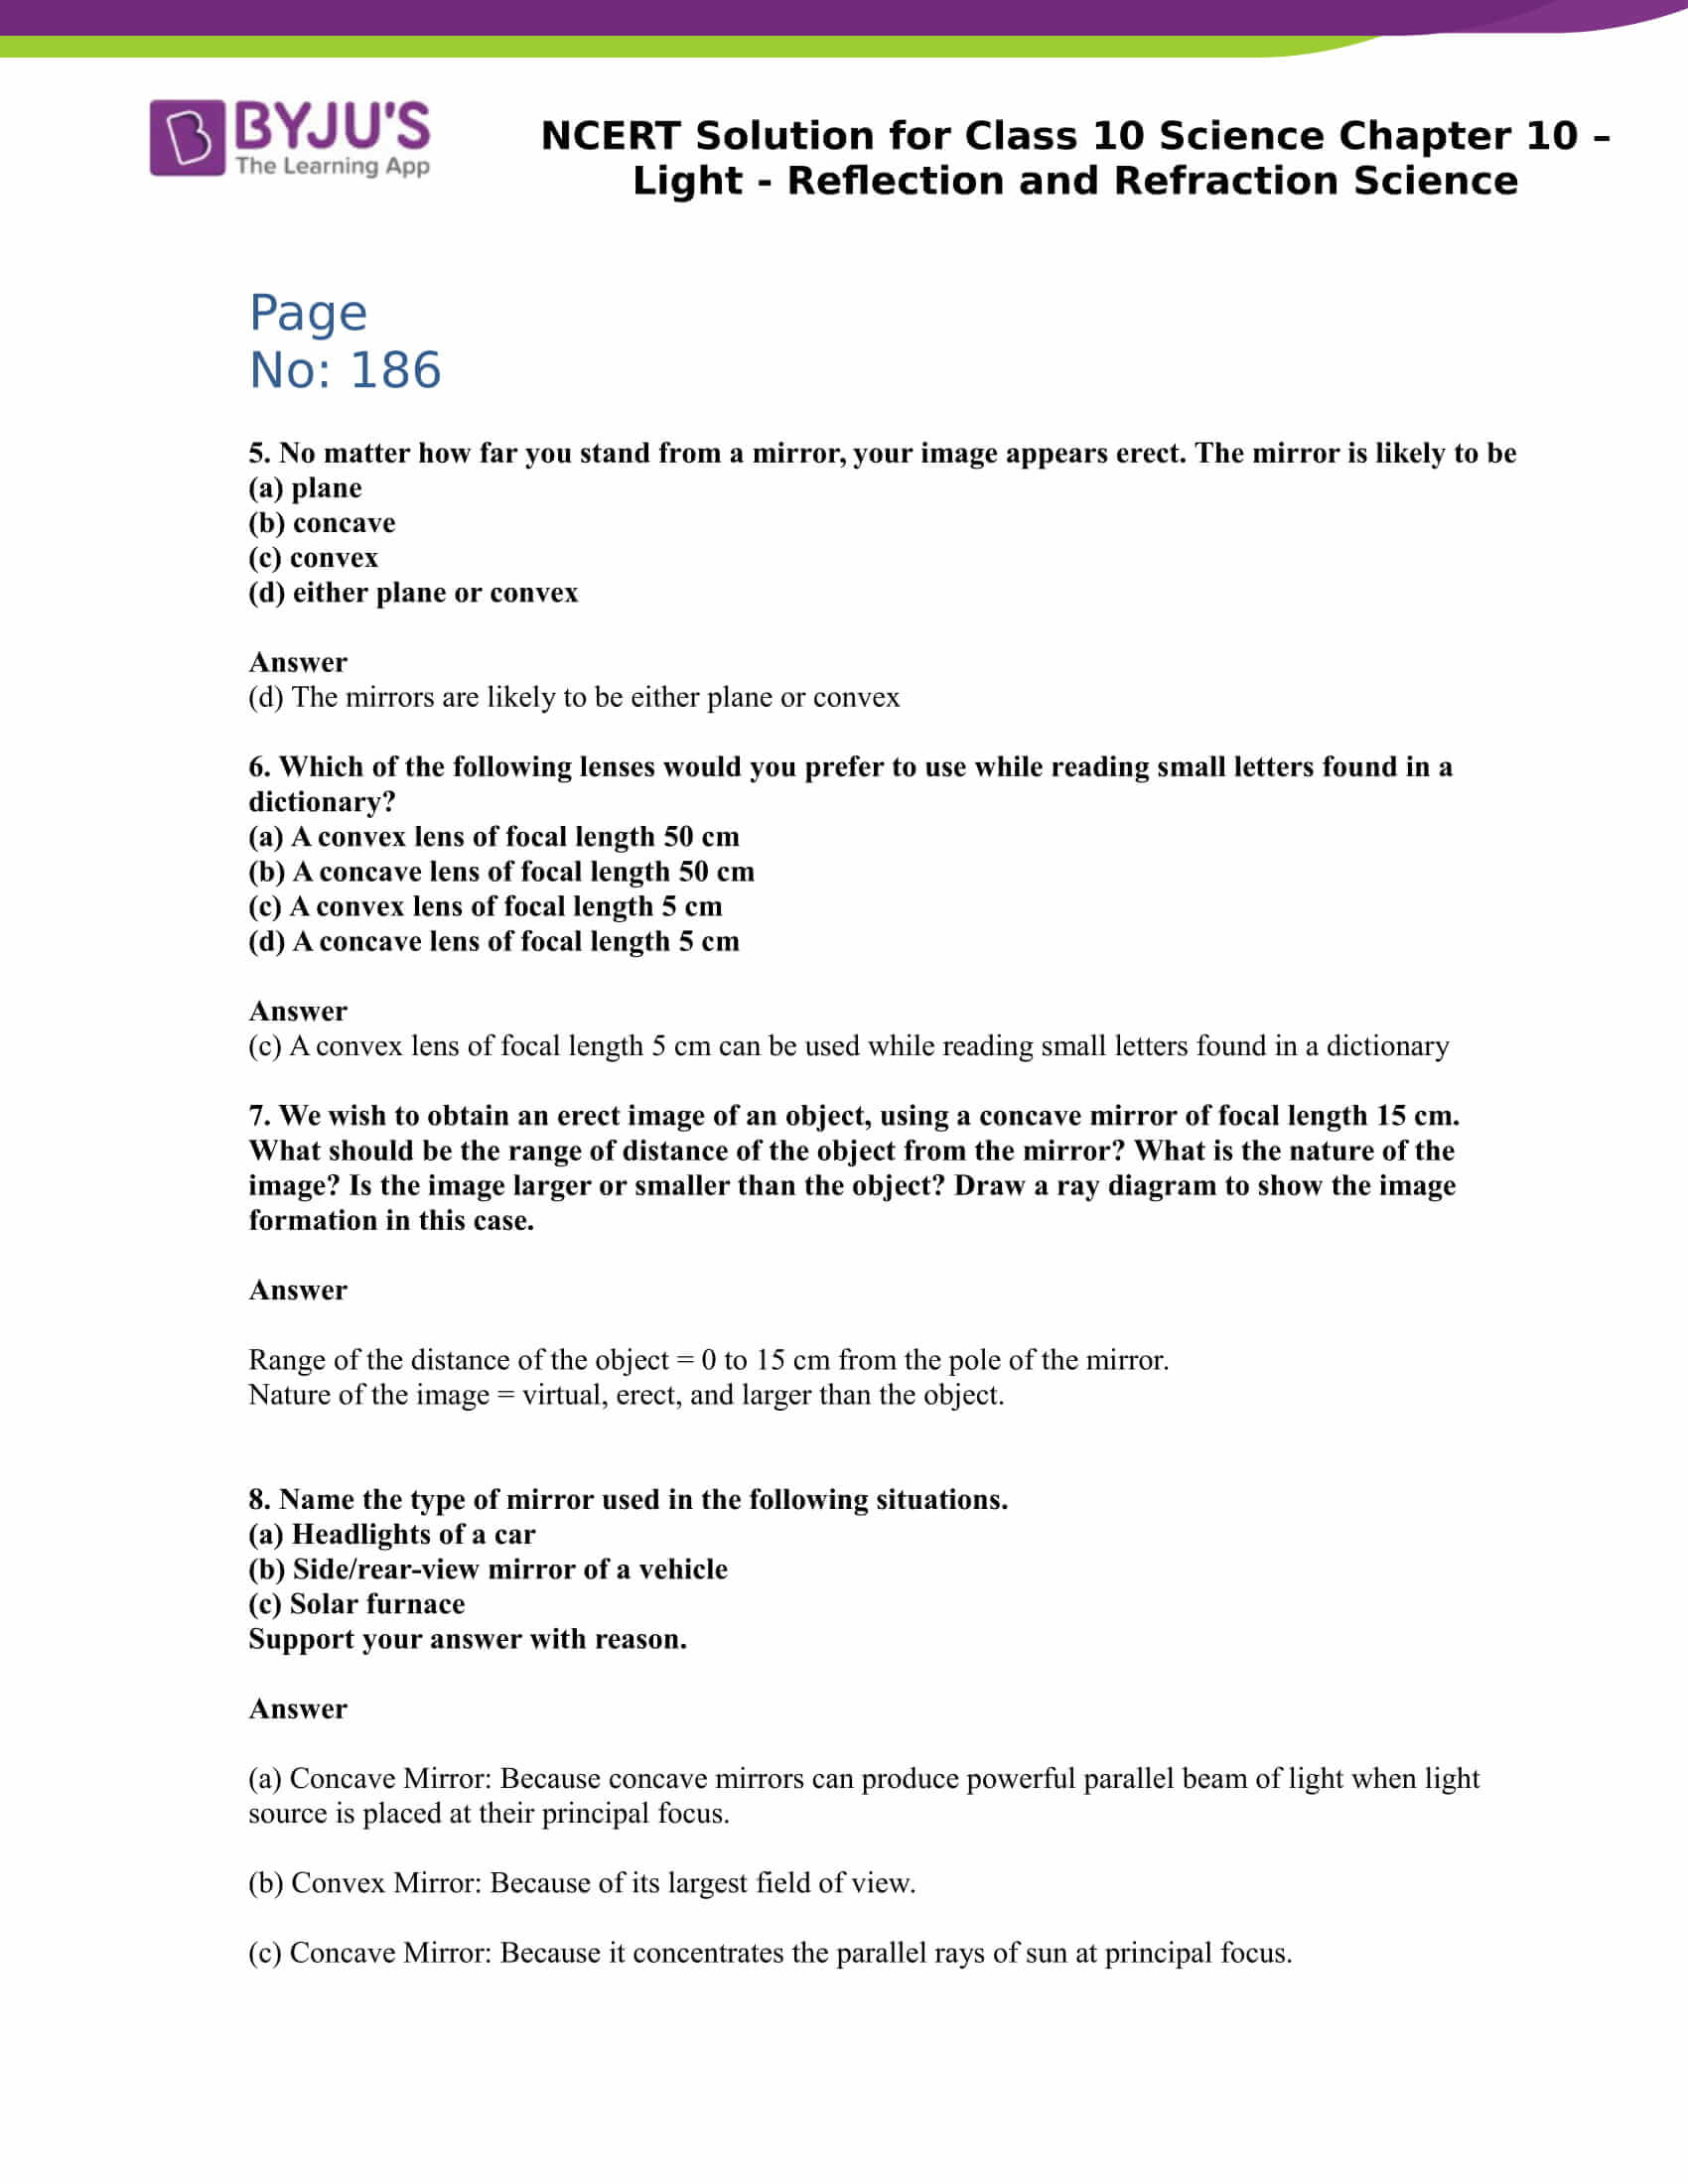 NCERT Solution for CBSE Class 10 Science Chapter 10 Light Reflection and Refraction Science Part 7